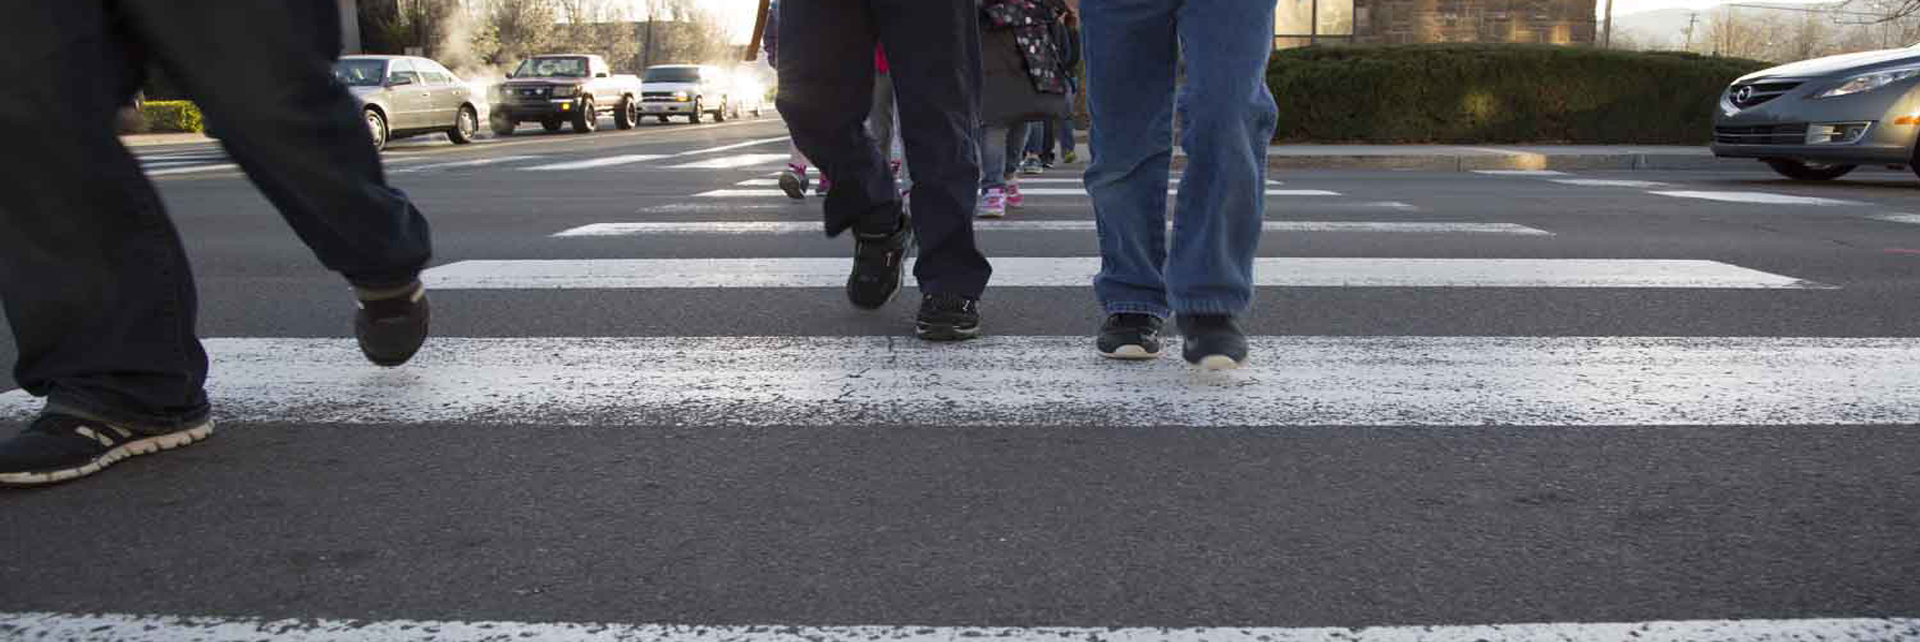 Pedestrians crossing the street at a designated crosswalk